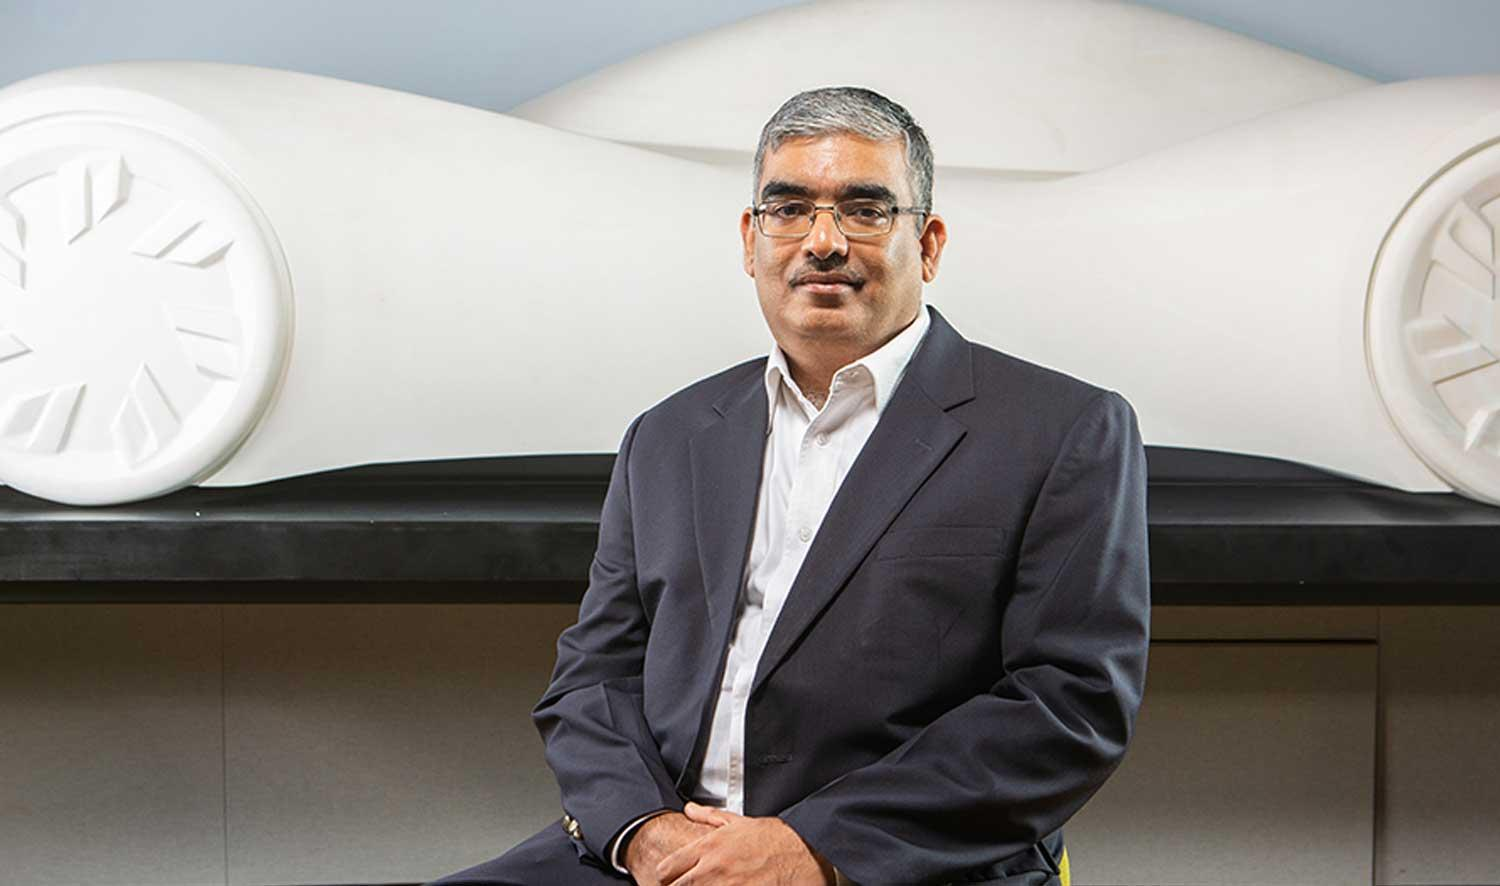 We thrive on technology disruptions: Tata Elxsi's Manoj Raghavan